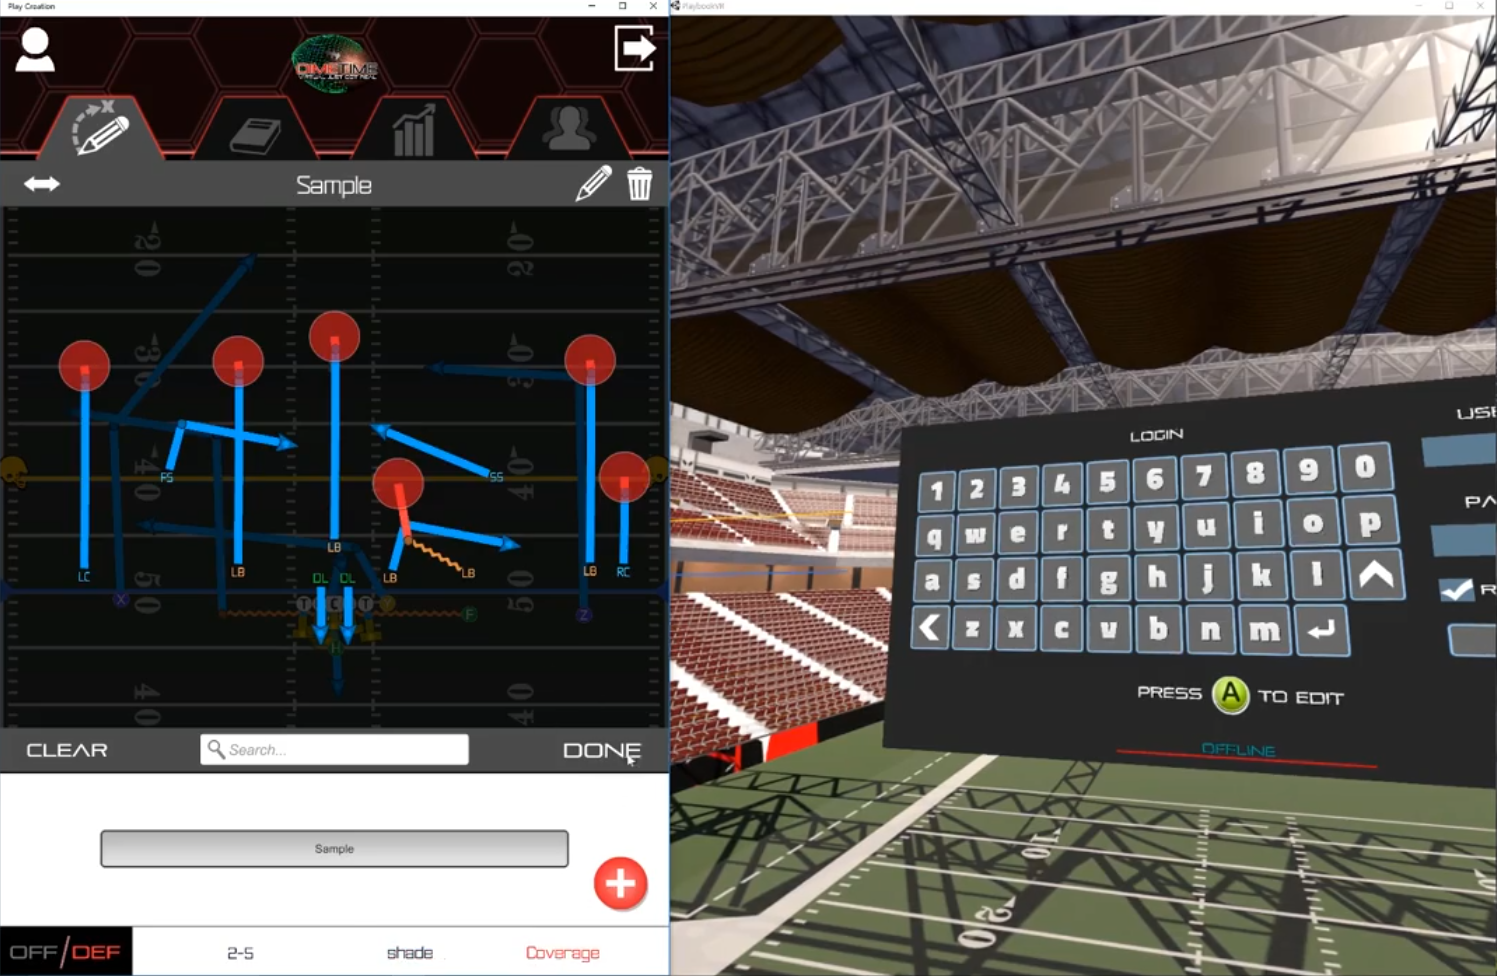 Coaches can save and edit plays with ease, then securely upload them to the cloud.